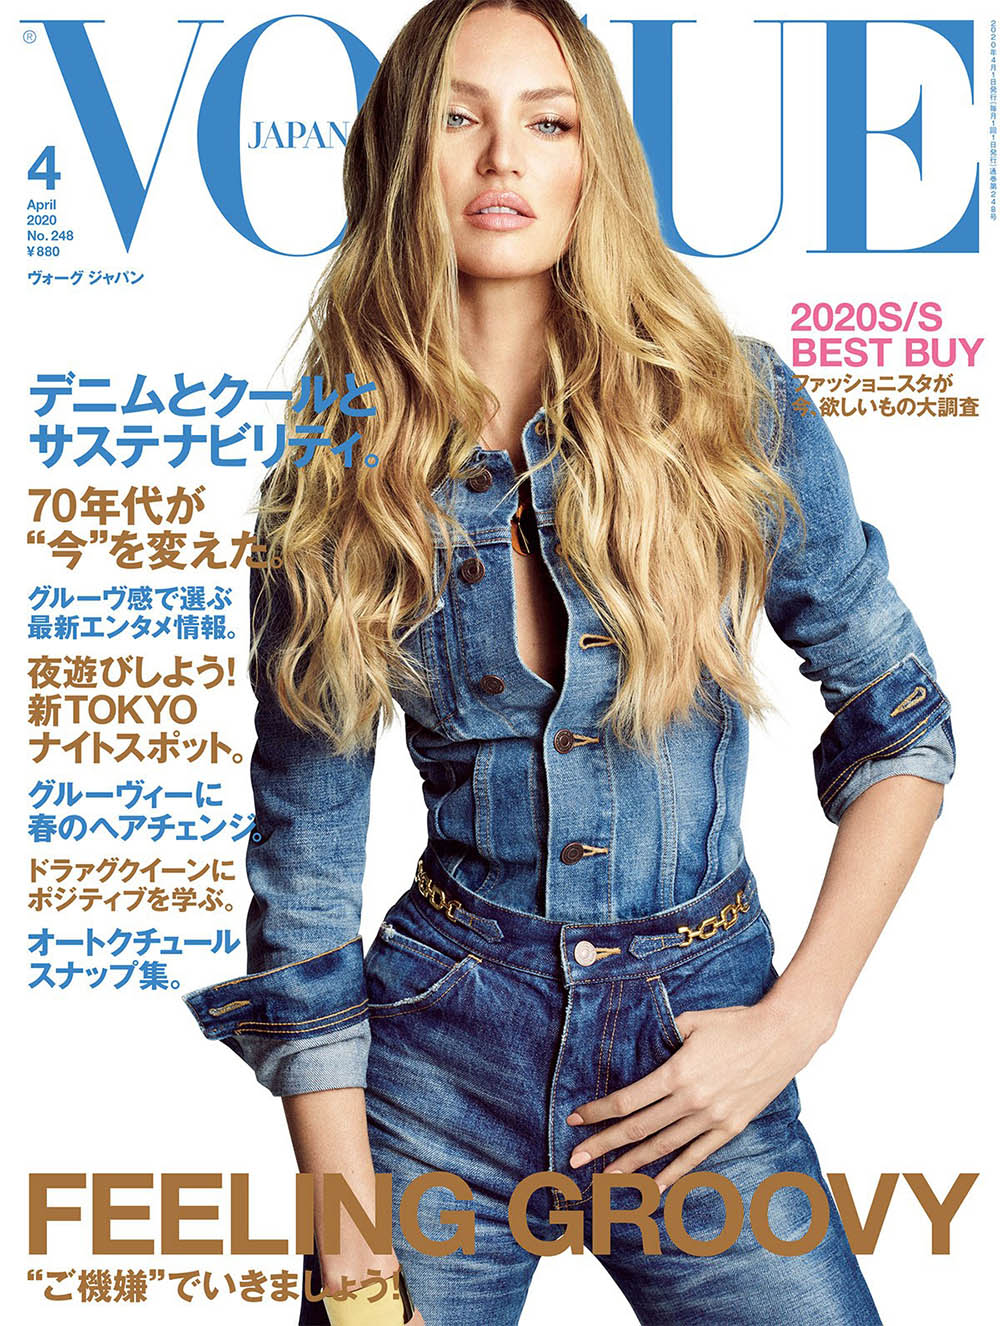 Candice Swanepoel covers Vogue Japan April 2020 by Luigi & Iango